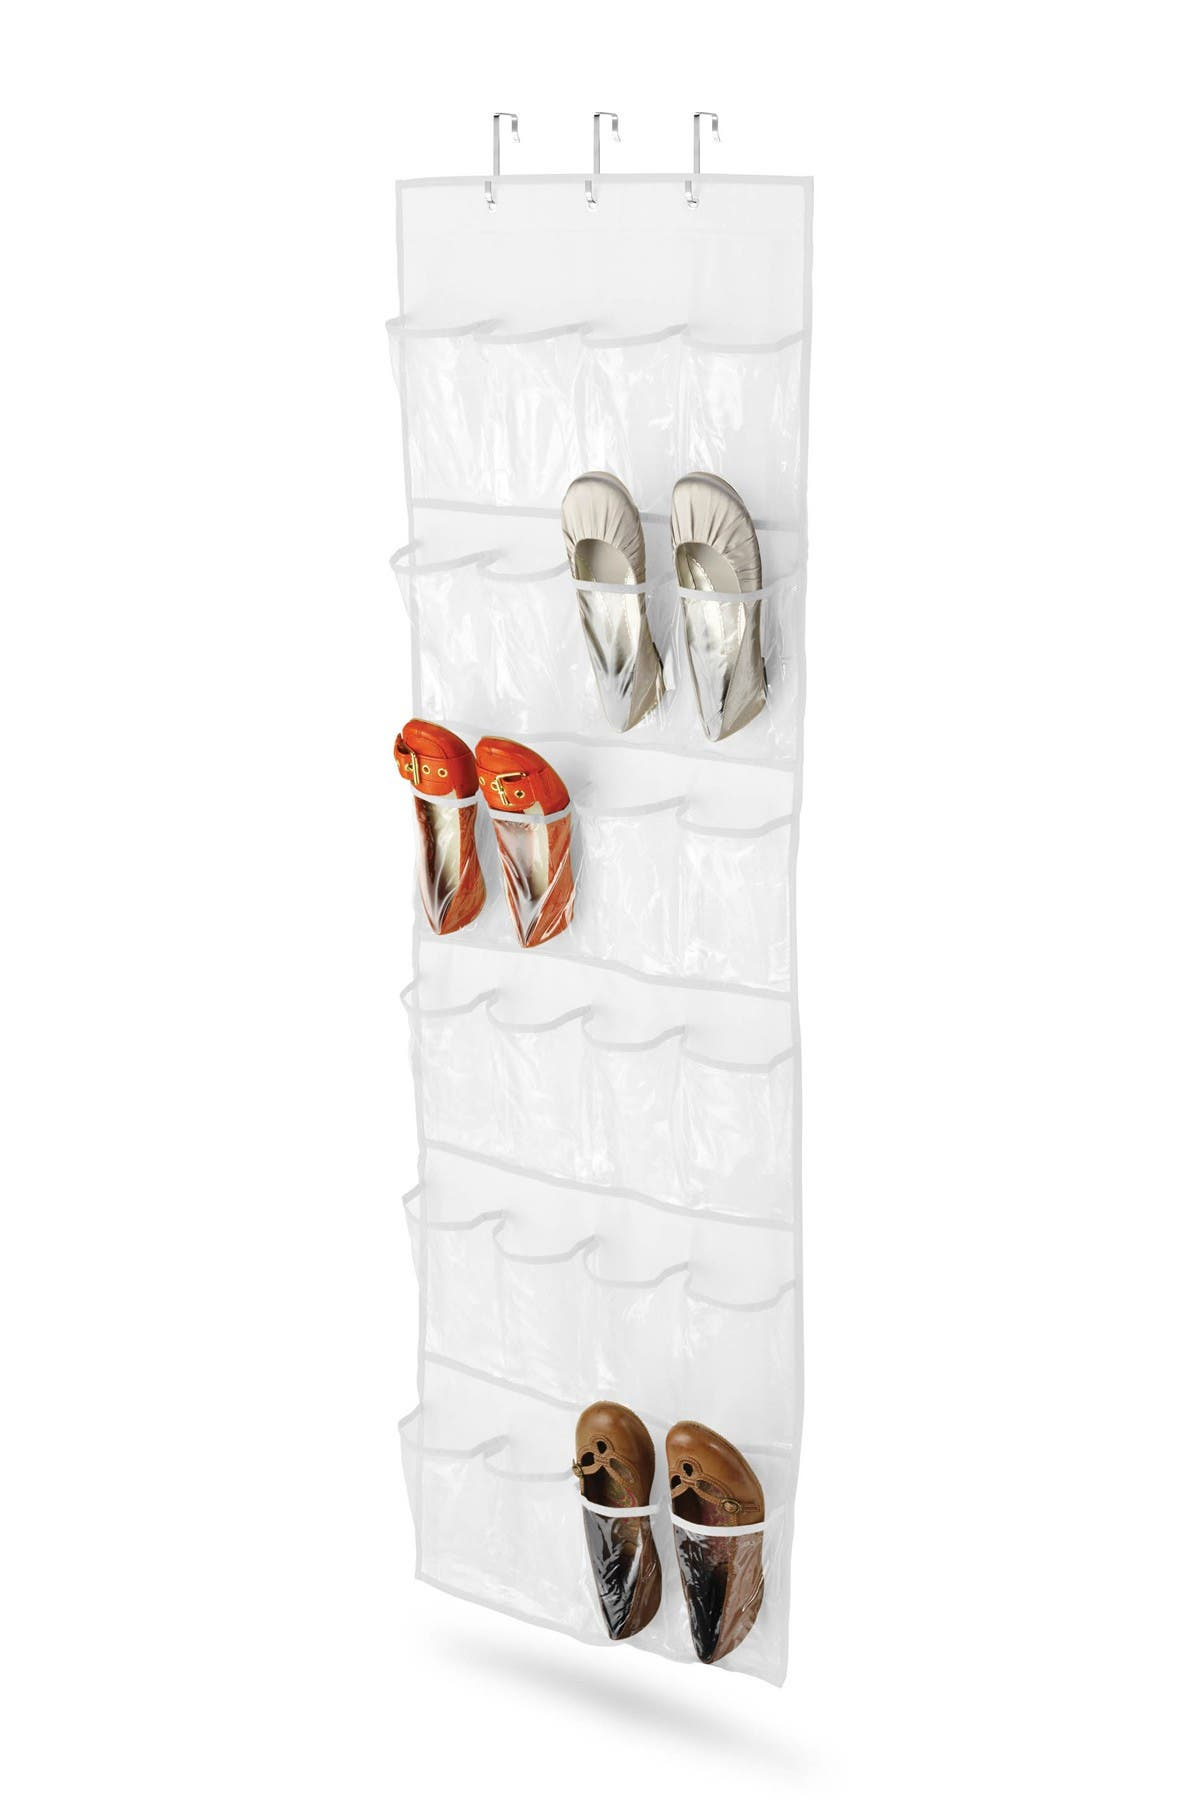 Image of Honey-Can-Do White 24 Pocket Over the Door Shoe Organizer